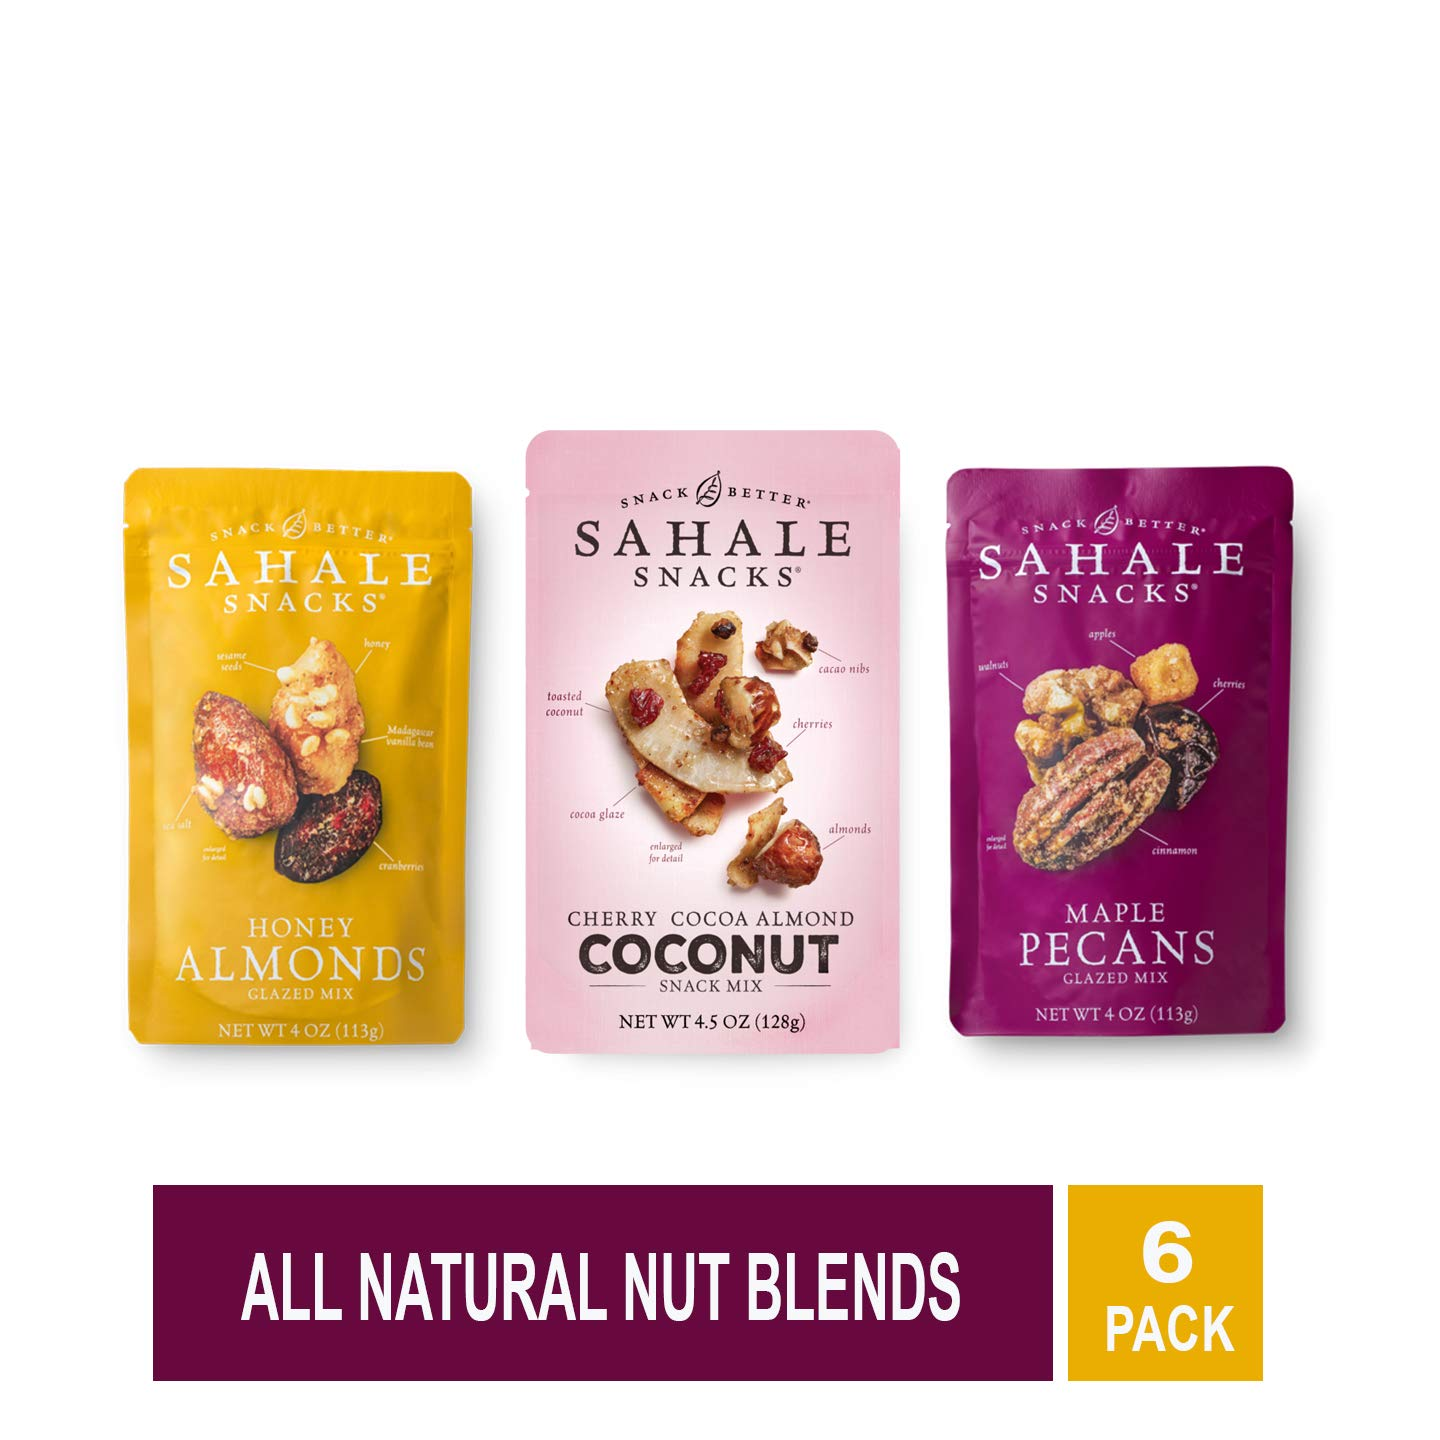 Sahale Snacks, Nut Snacks in a Resealable Pouch Variety of 3 Flavors ( Maple Pecans, Cherry Cocoa Coconut, Honey Almonds Glazed ) Pack of 6 by Sahale Snack (Image #1)